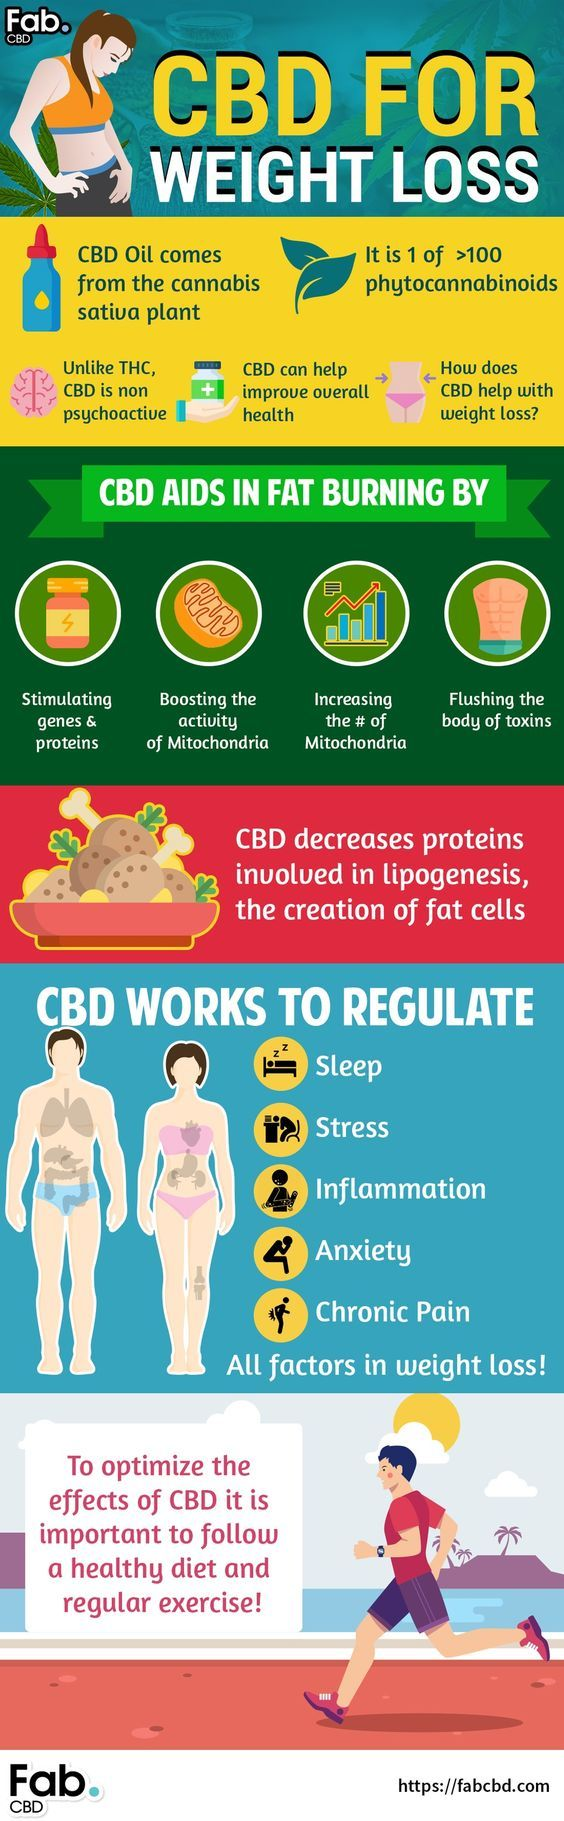 Best CBD Oil For Weight Loss: A Natural Appetite Suppressant